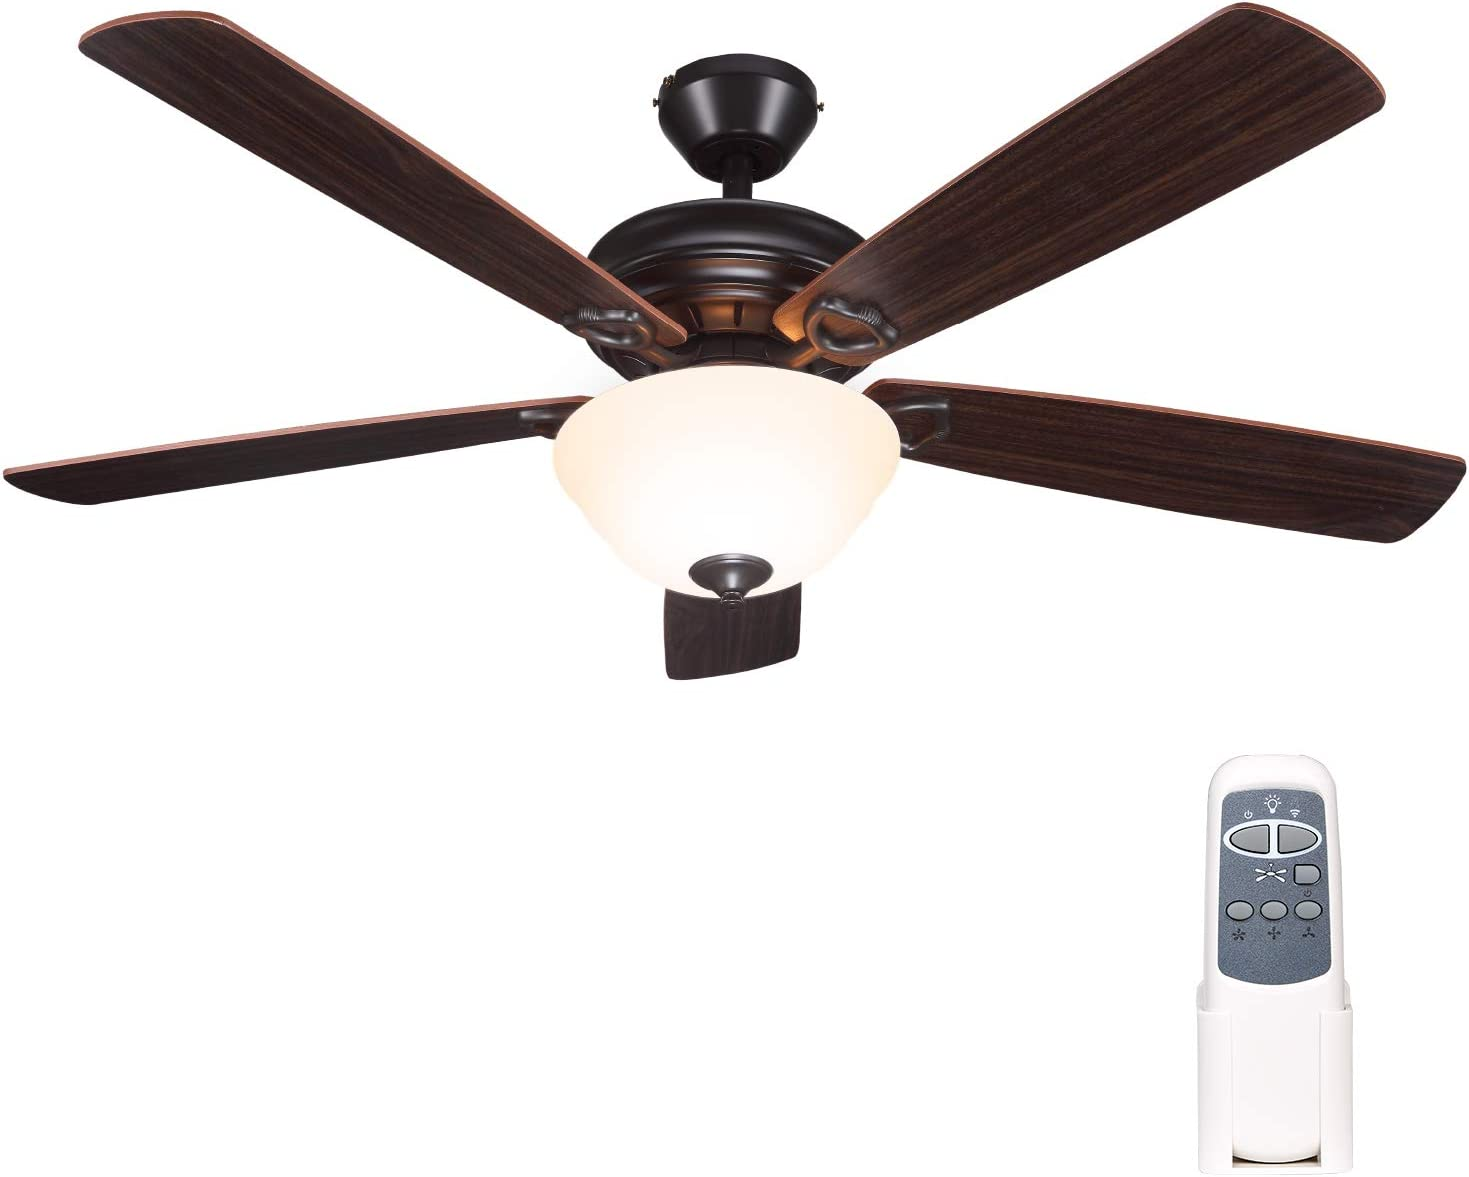 Hykolity 52 Inch Indoor Oil-Rubbed Bronze Ceiling Fan With Light Kits and Remote Control, Classic Style, Lifetime Motor Warranty, Reversible Blades, ETL for Living room, Bedroom, Basement